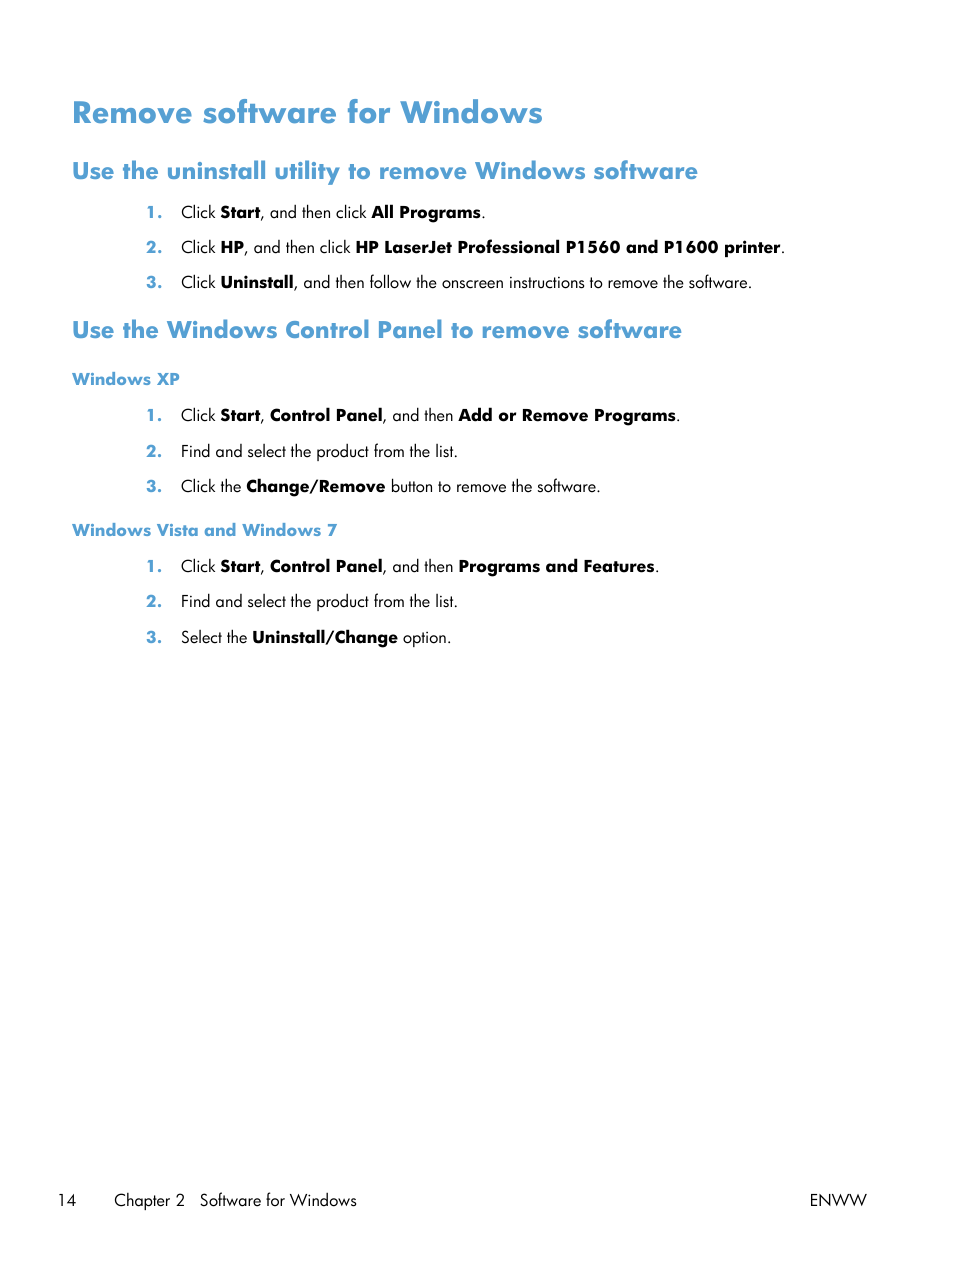 Remove software for windows, Use the windows control panel to remove  software | HP Laserjet